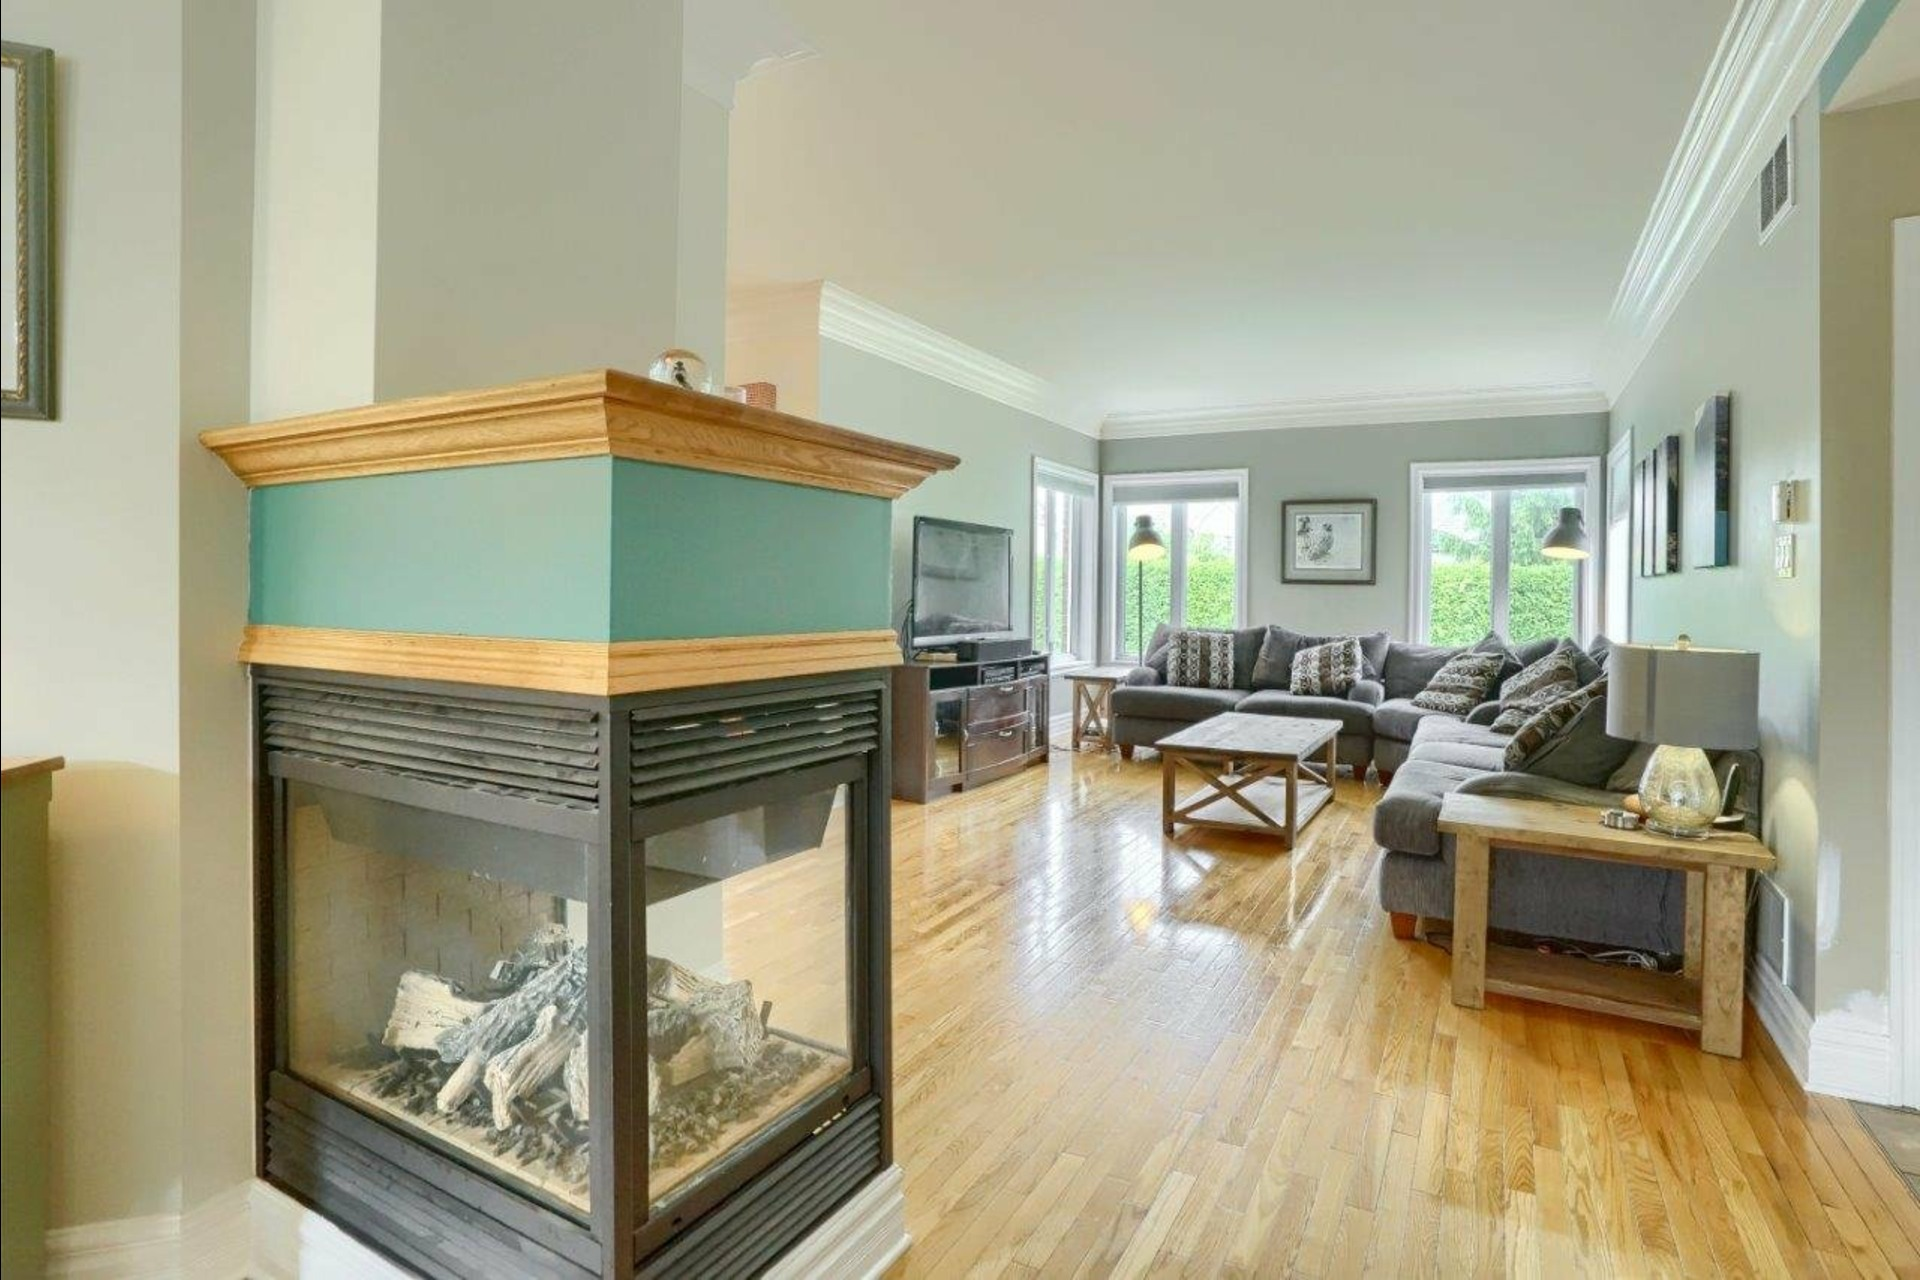 image 10 - House For sale Brossard - 12 rooms